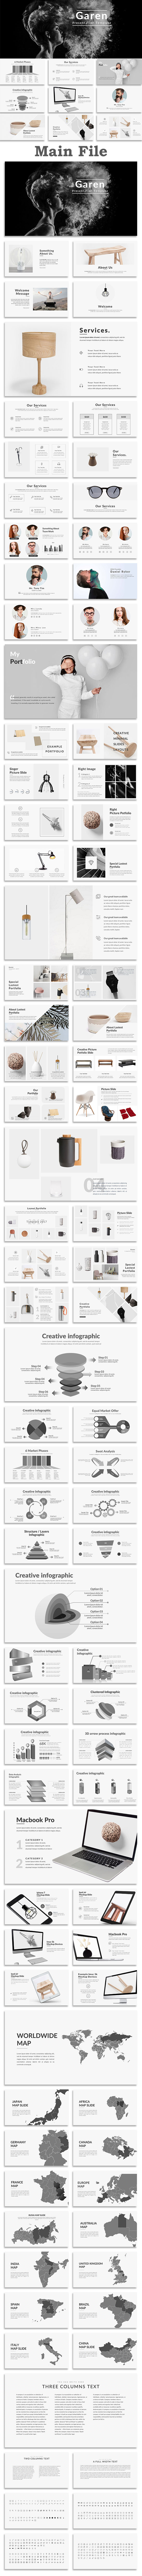 Garen - Creative Keynote Template - Creative Keynote Templates